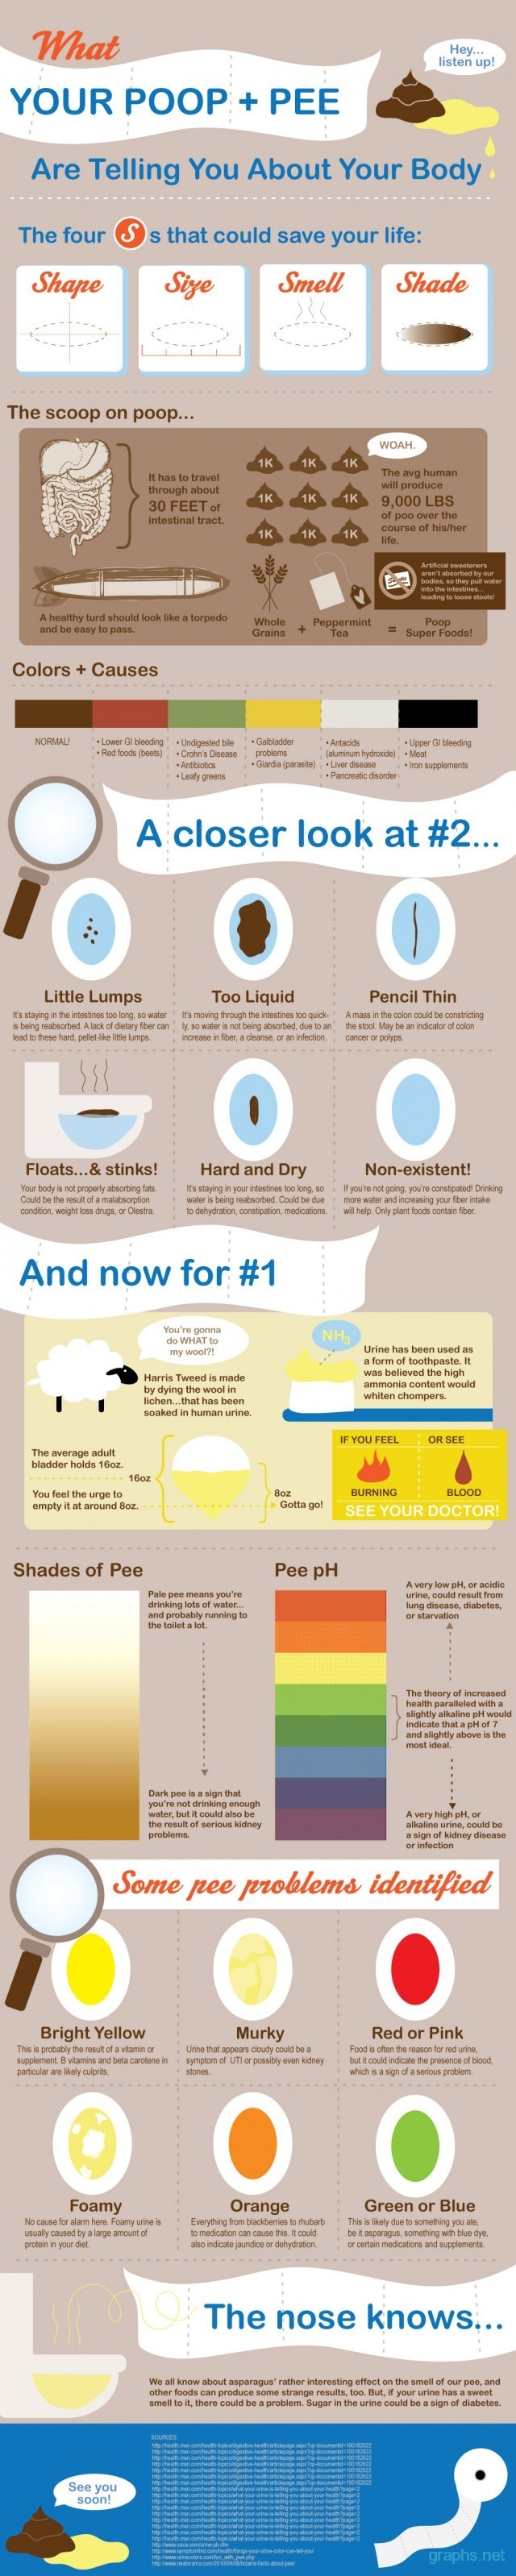 About Your Body poop and pee facts